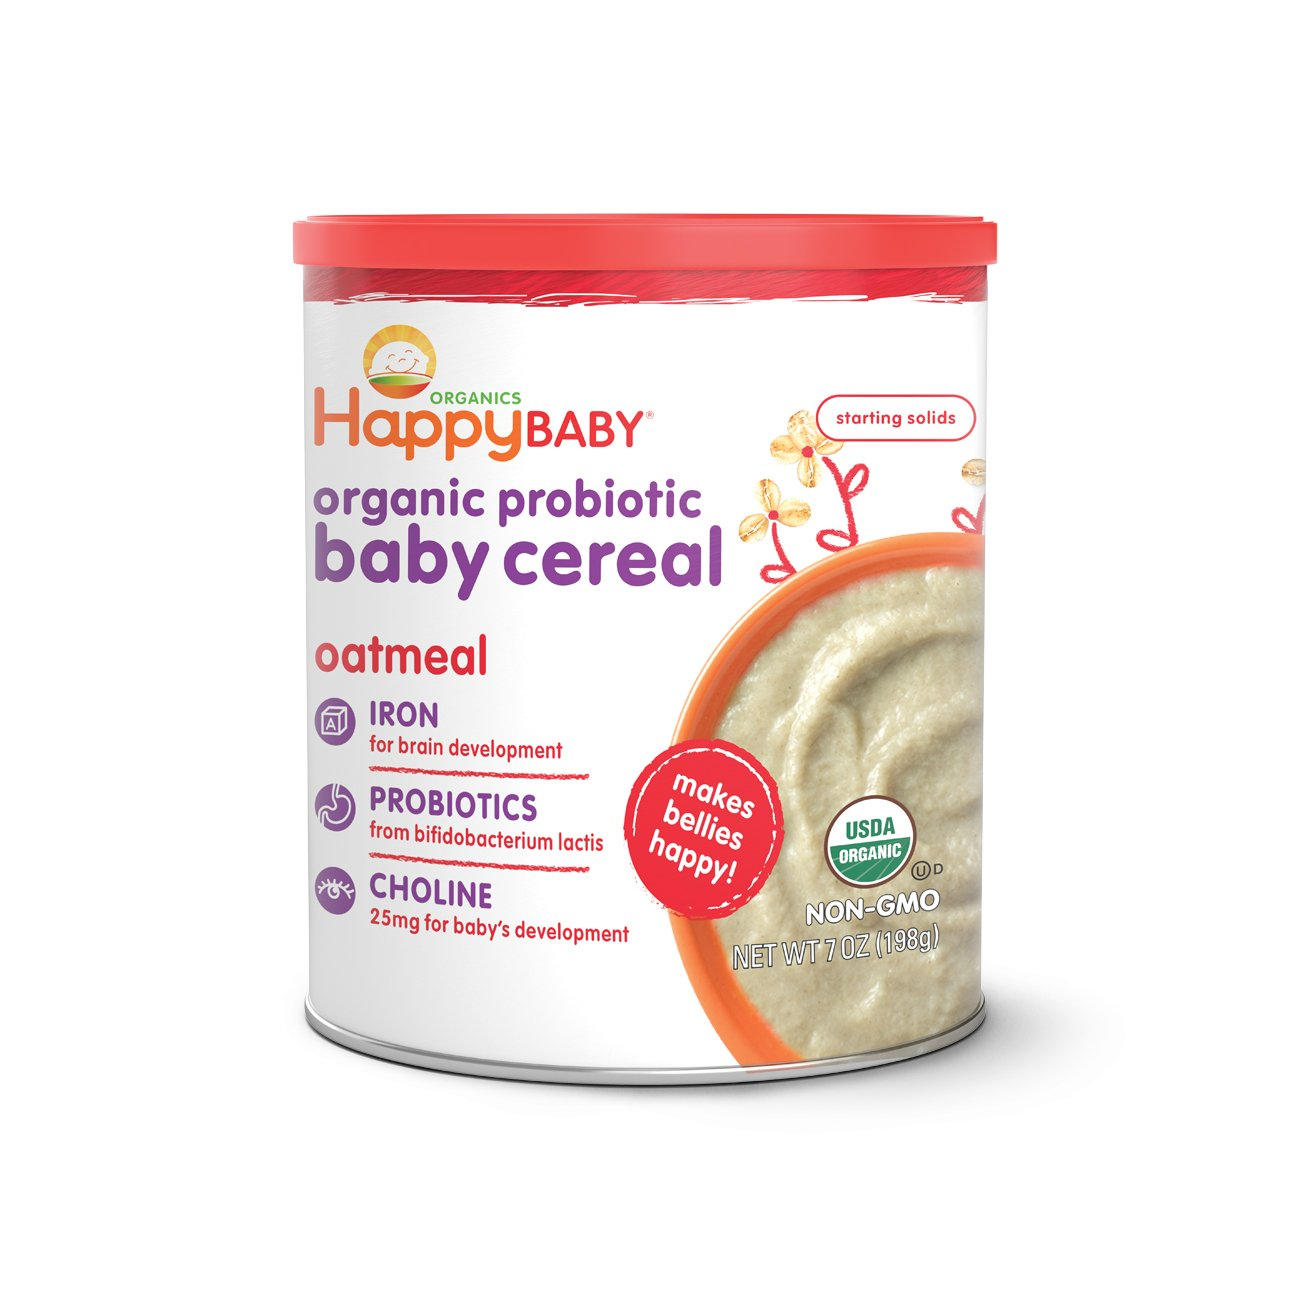 Happy Baby Organic Probiotic Baby Cereal with Choline, Oatmeal, 7 Ounce Canister (Pack of 6) Packaging may vary